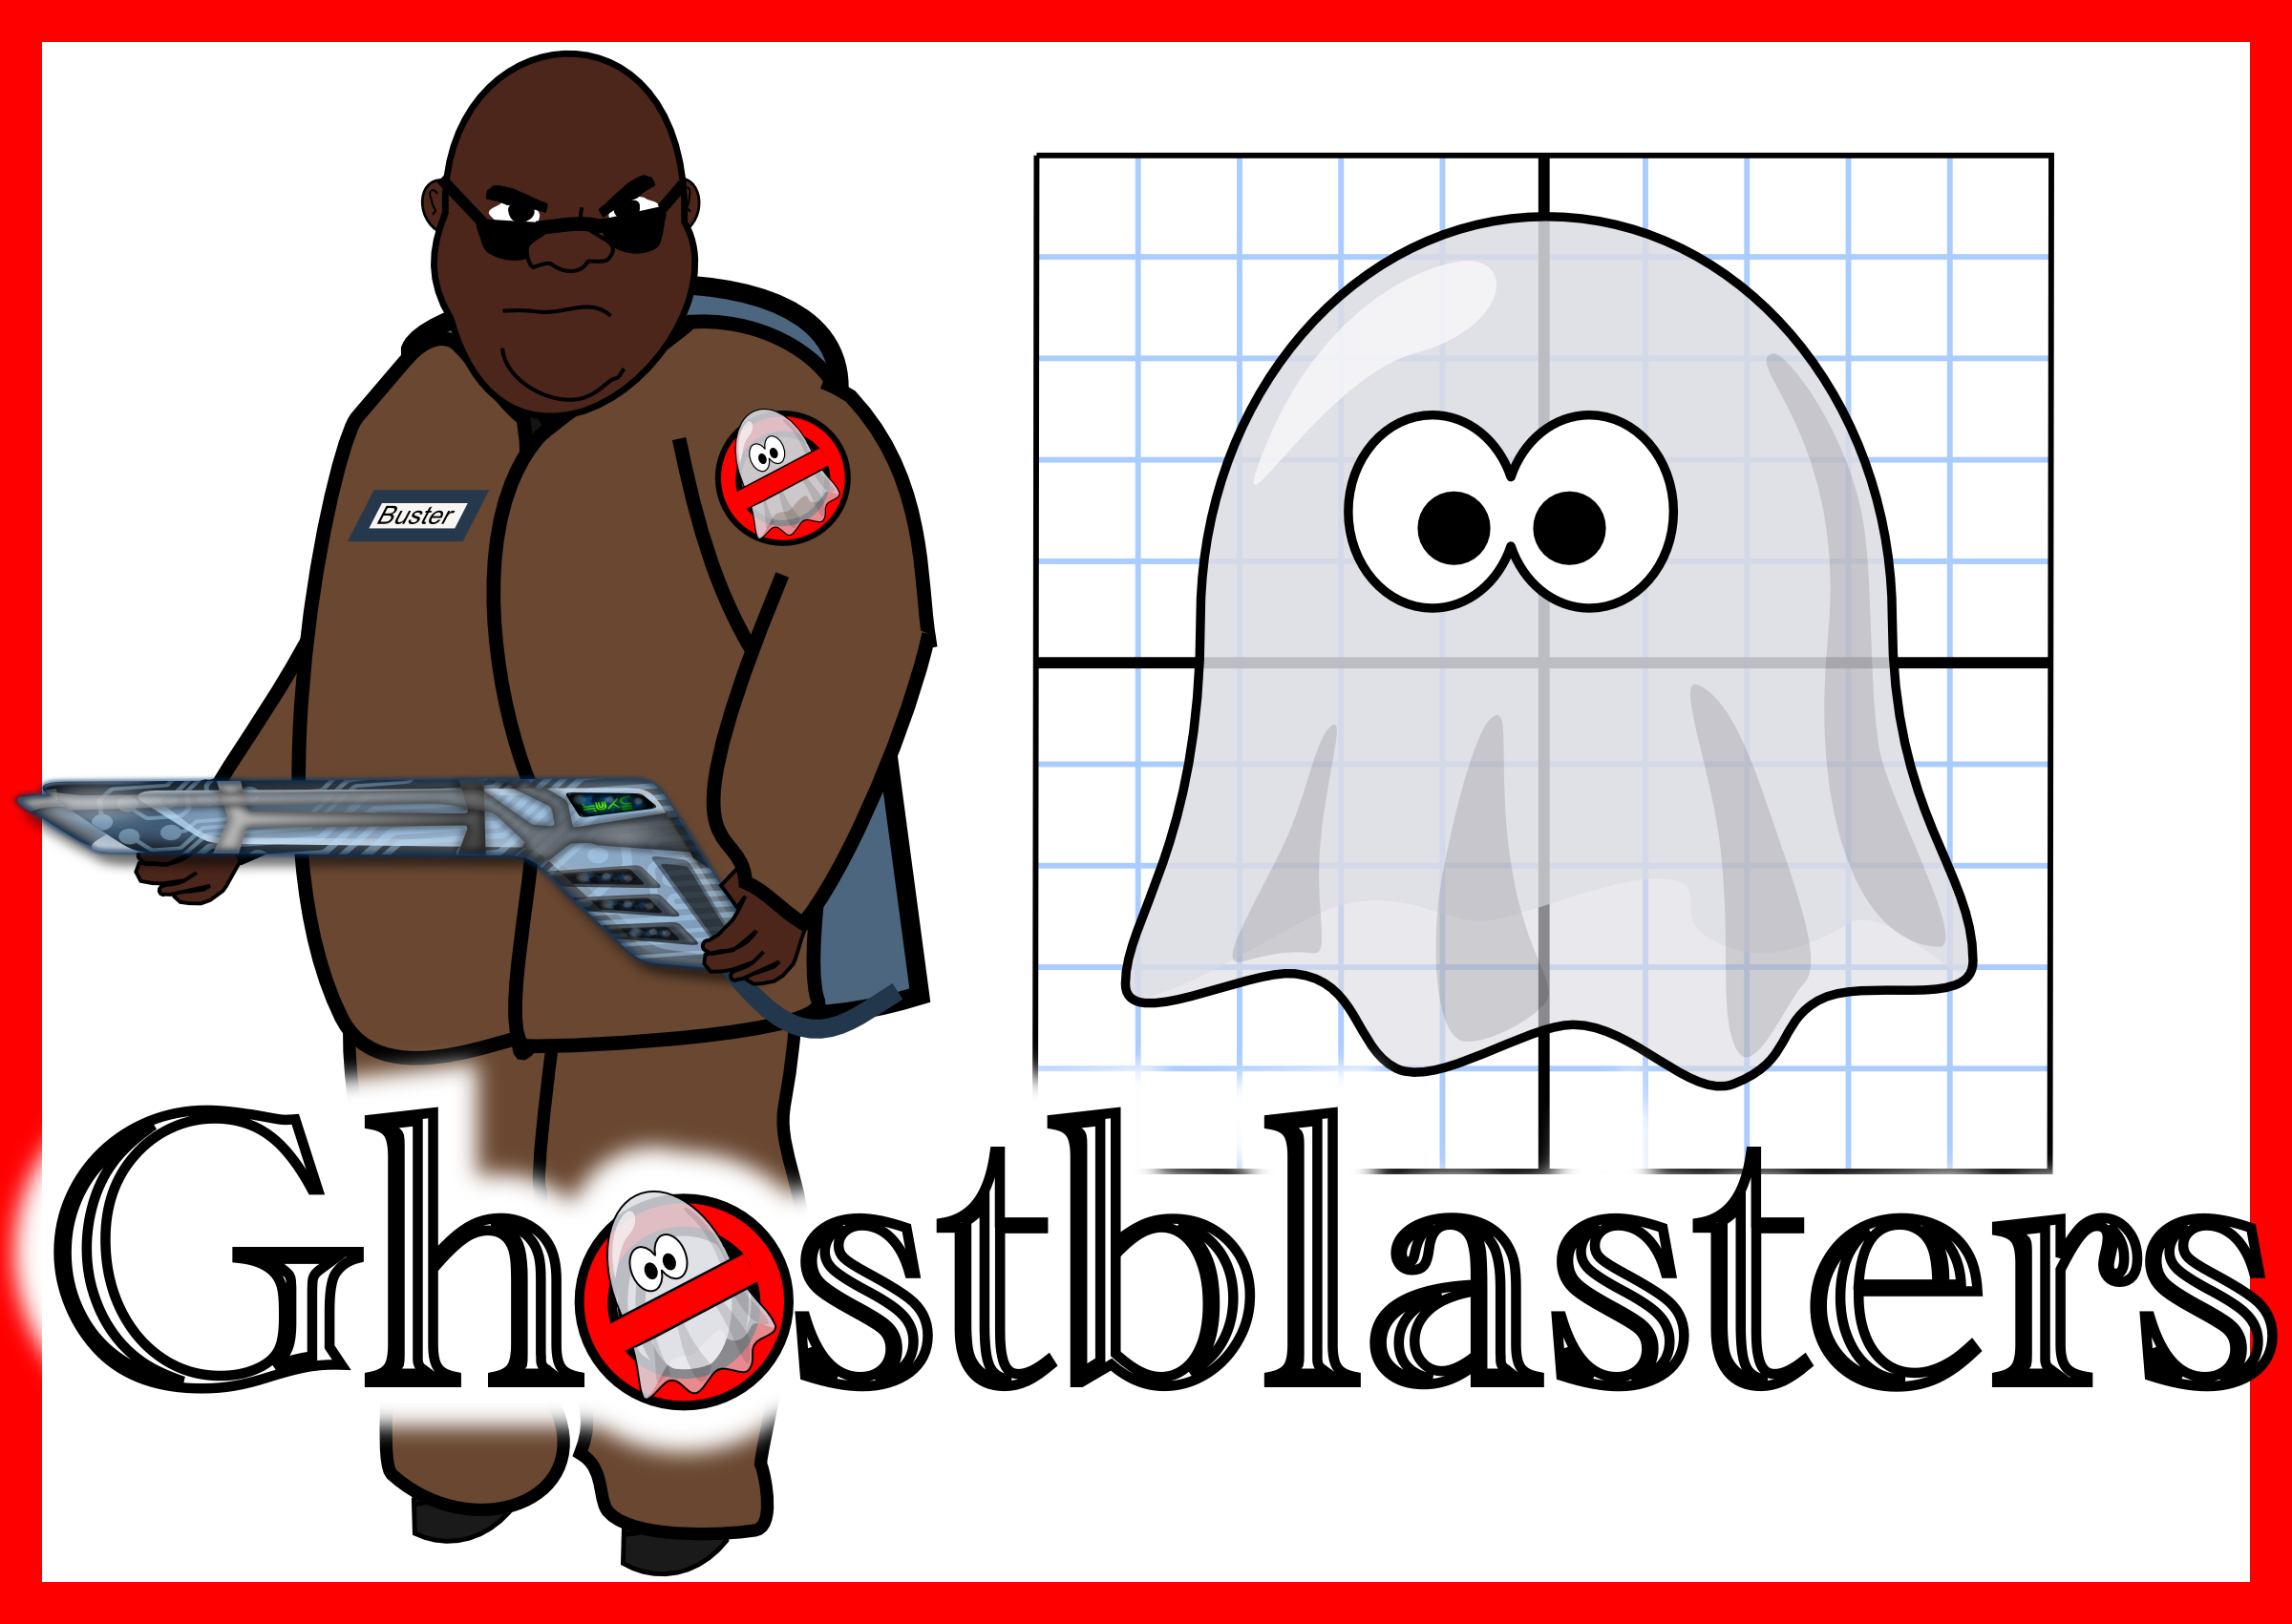 Ghostblasters Ordered Pair Amp Coordinate Plane Project